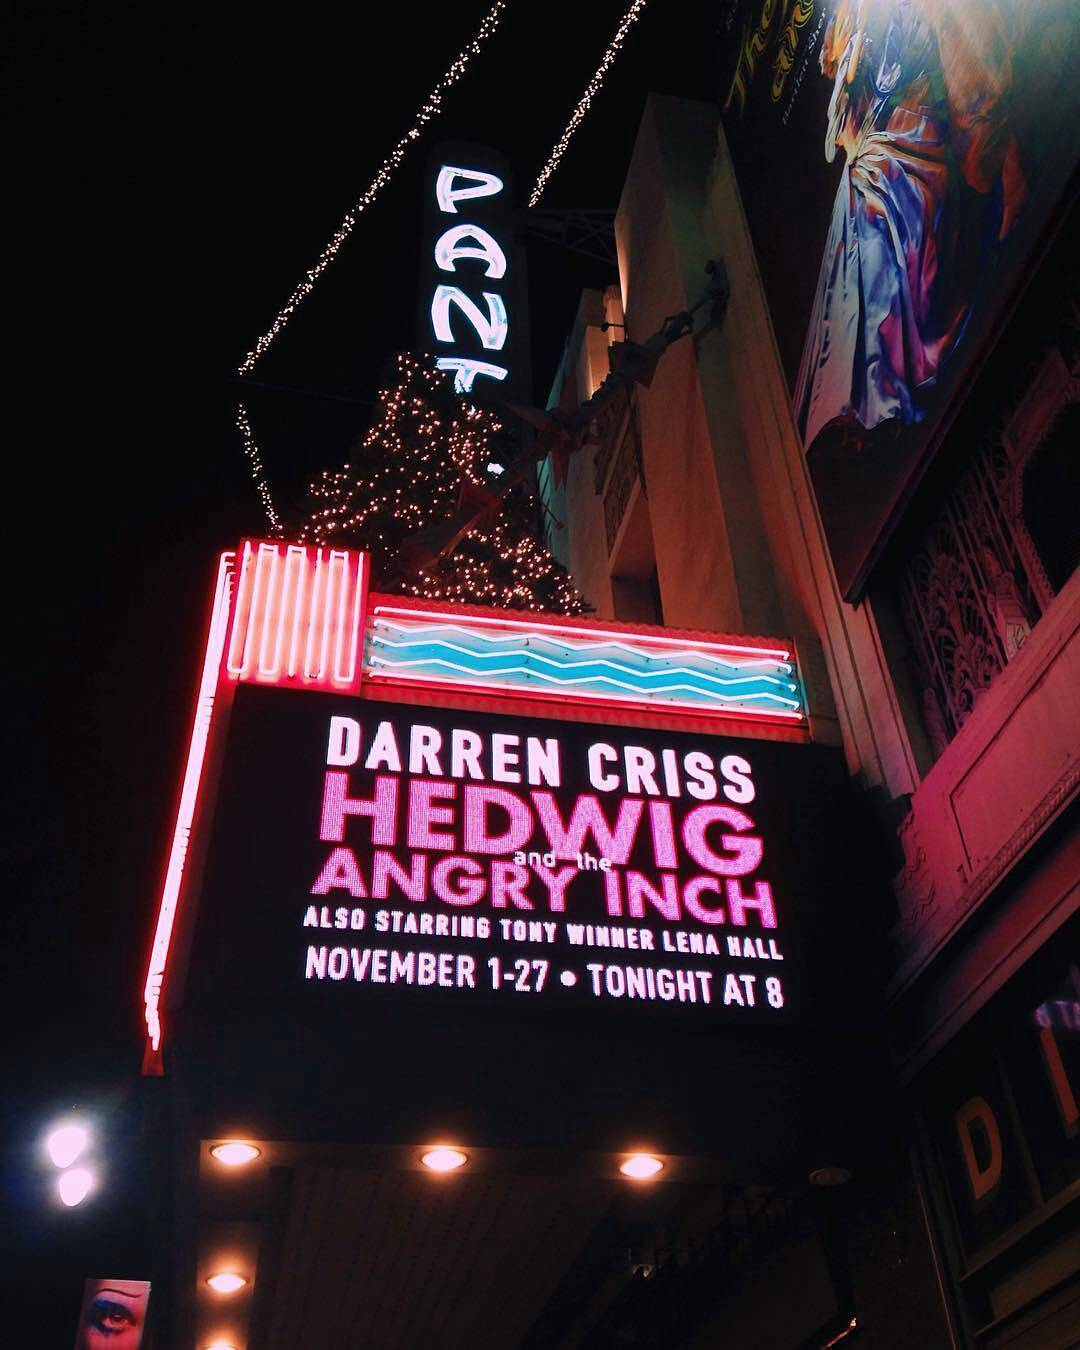 haitryles - Fan Reviews, Media Reviews, and comments from members of the Media, about Darren in Hedwig and the Angry Inch--SF and L.A. Tour  - Page 5 Tumblr_ogexxp1bfU1ubd9qxo1_1280